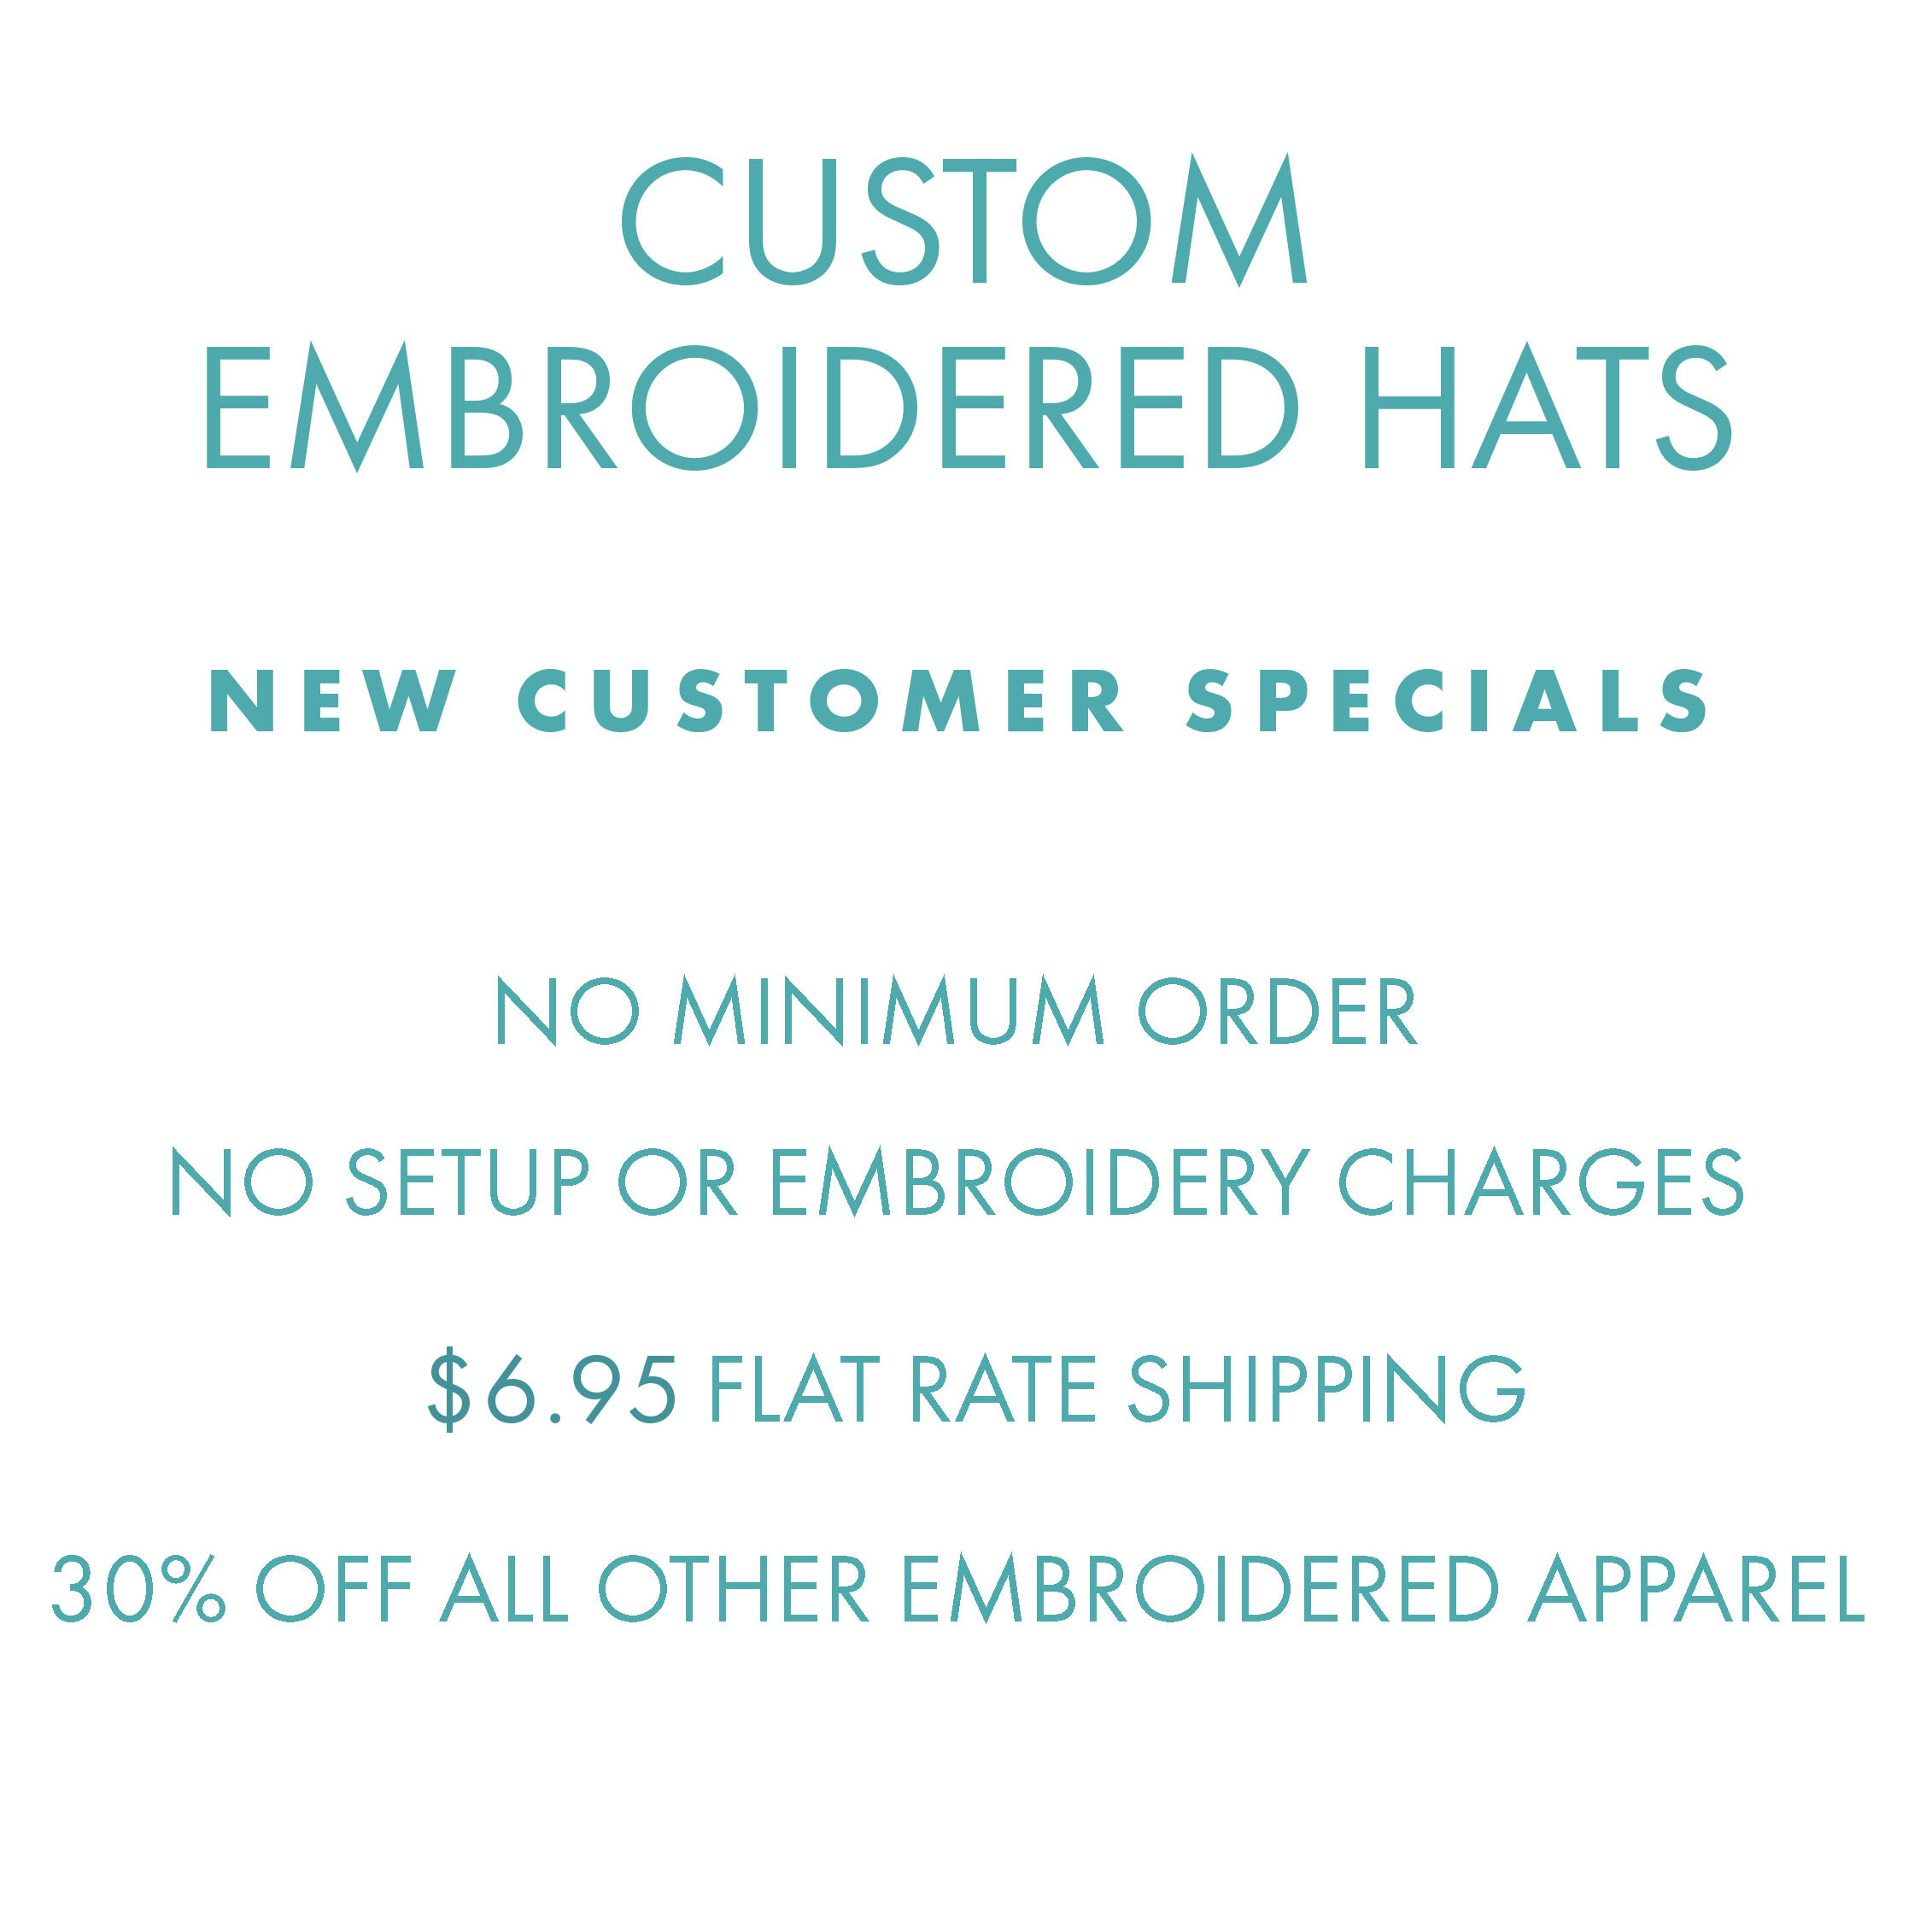 c7013b29 Custom Embroidered Hats, no setup or embroidery charges, shipping just  $6.95 per order